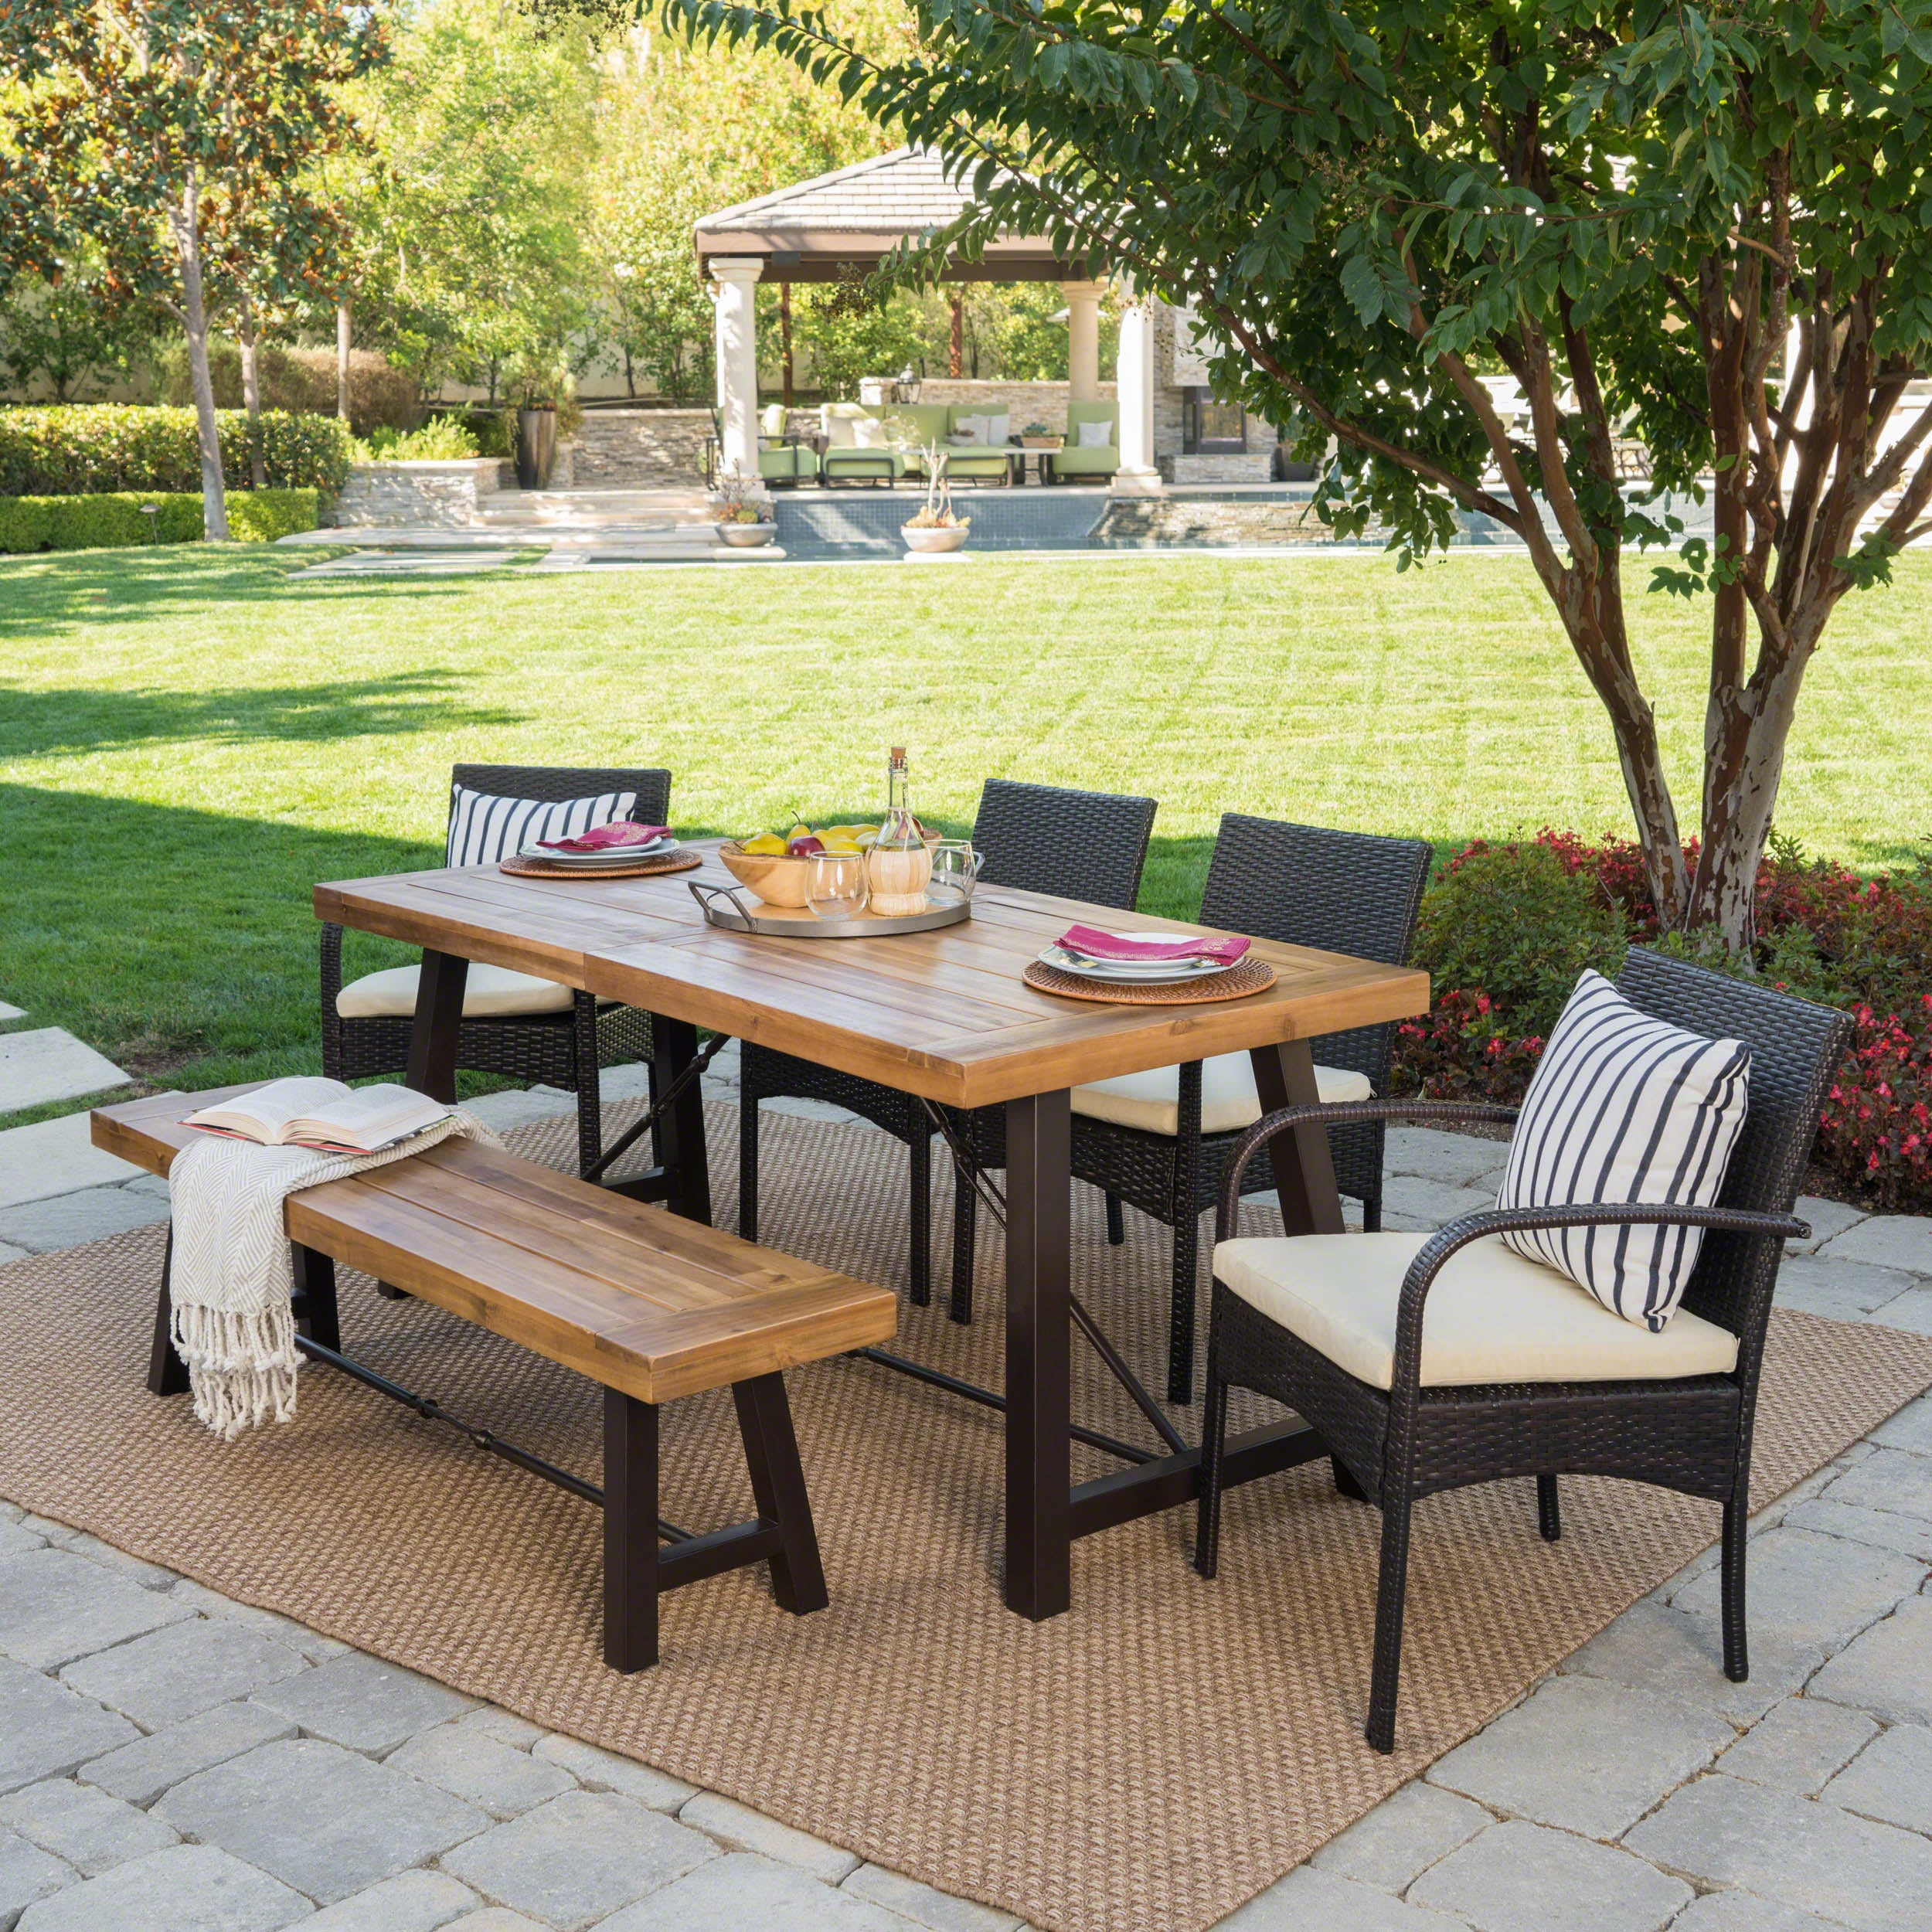 Betsys Outdoor 6 Piece Rectangle Wicker Wood Dining Set With Cushions By Christopher Knight Home